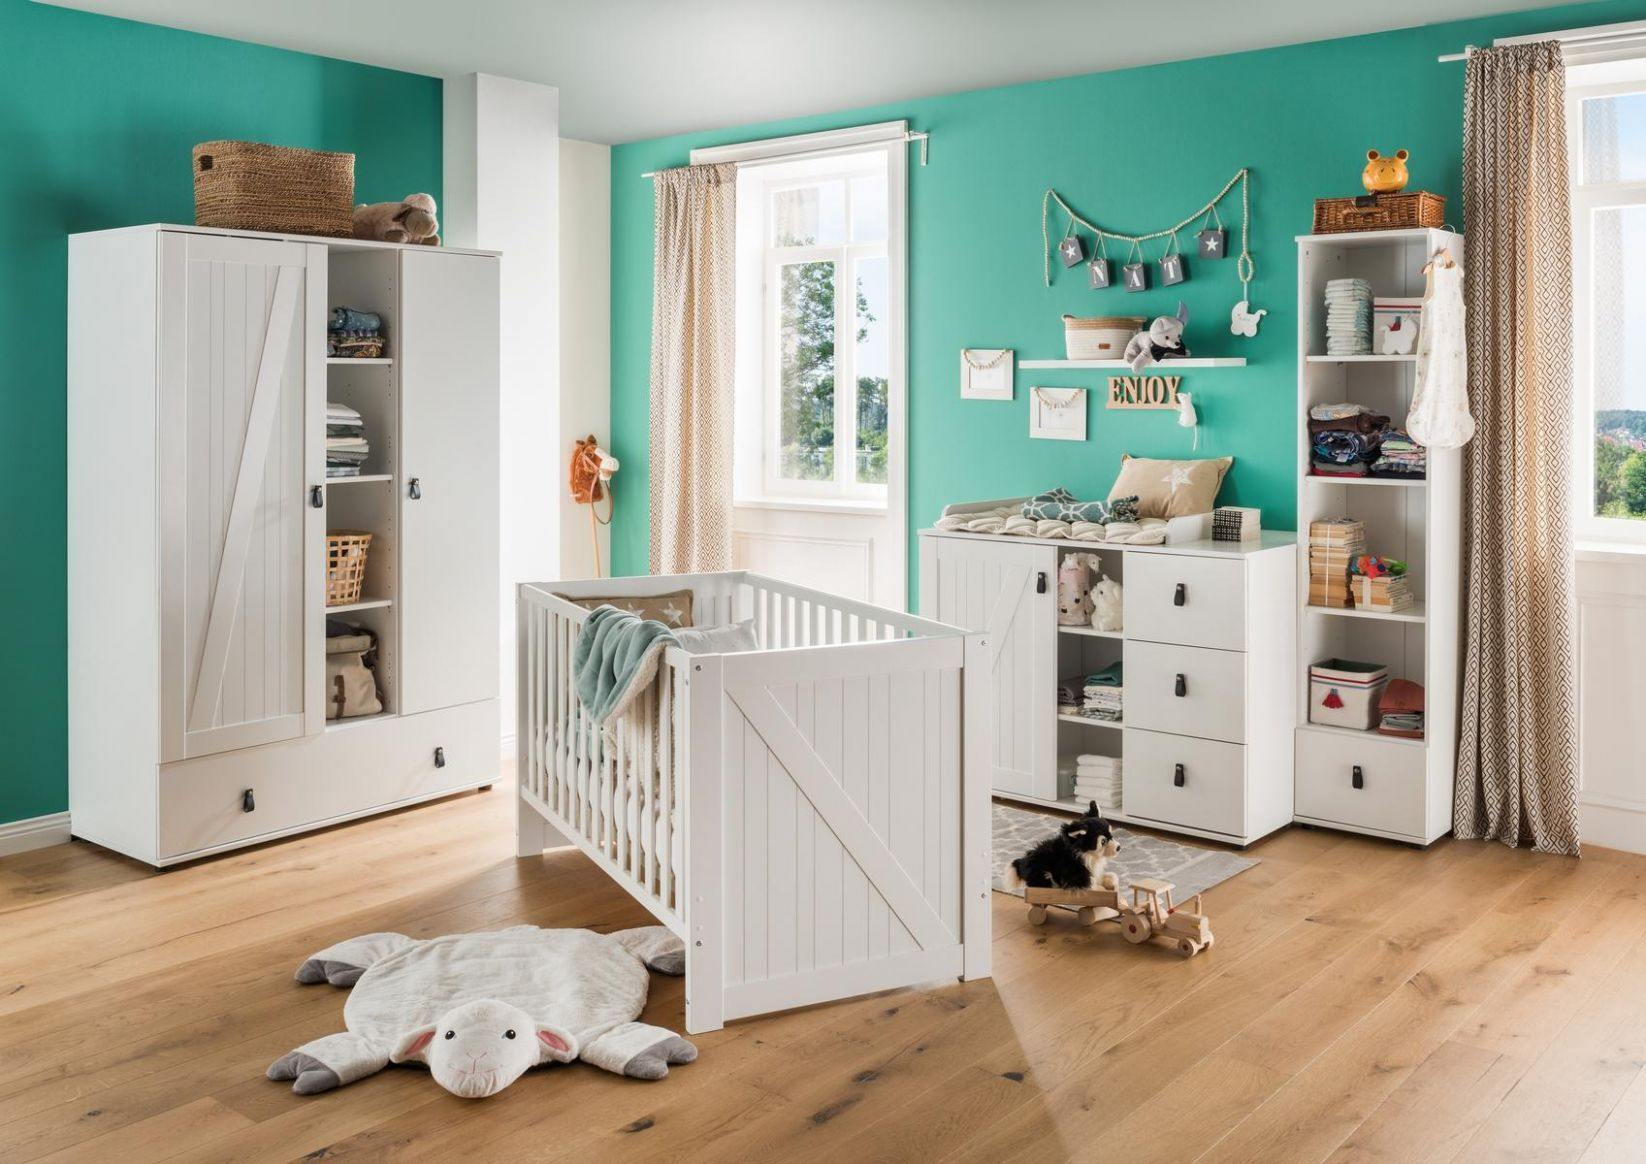 Trelleborg Baby Room - Moebel Design Studio - baby room flooring